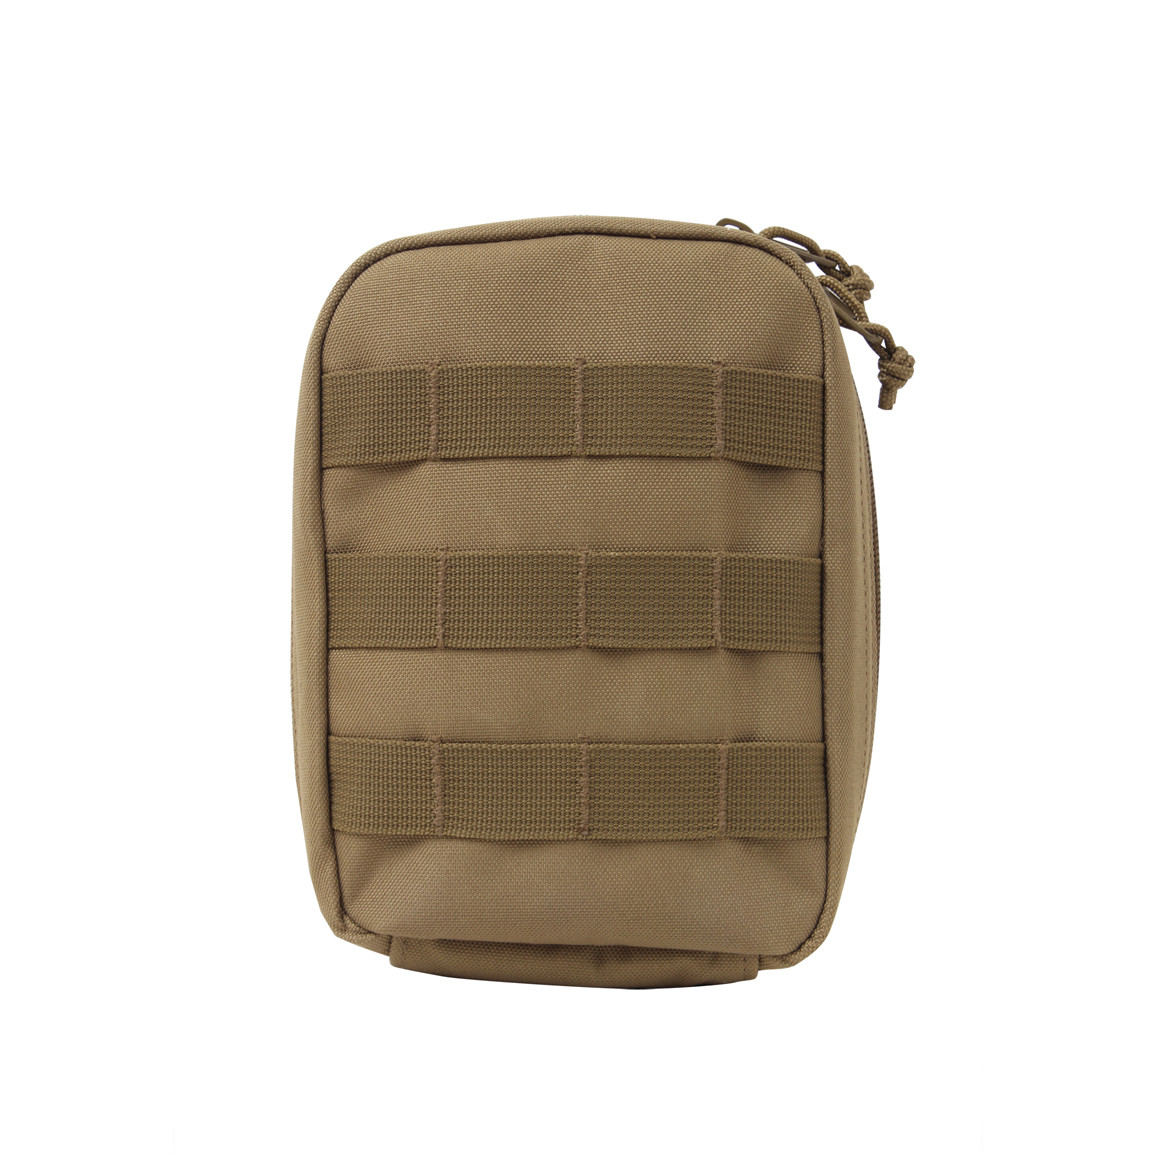 Shop Molle Tactical Trauma First Aid Pouches Fatigues Army Navy